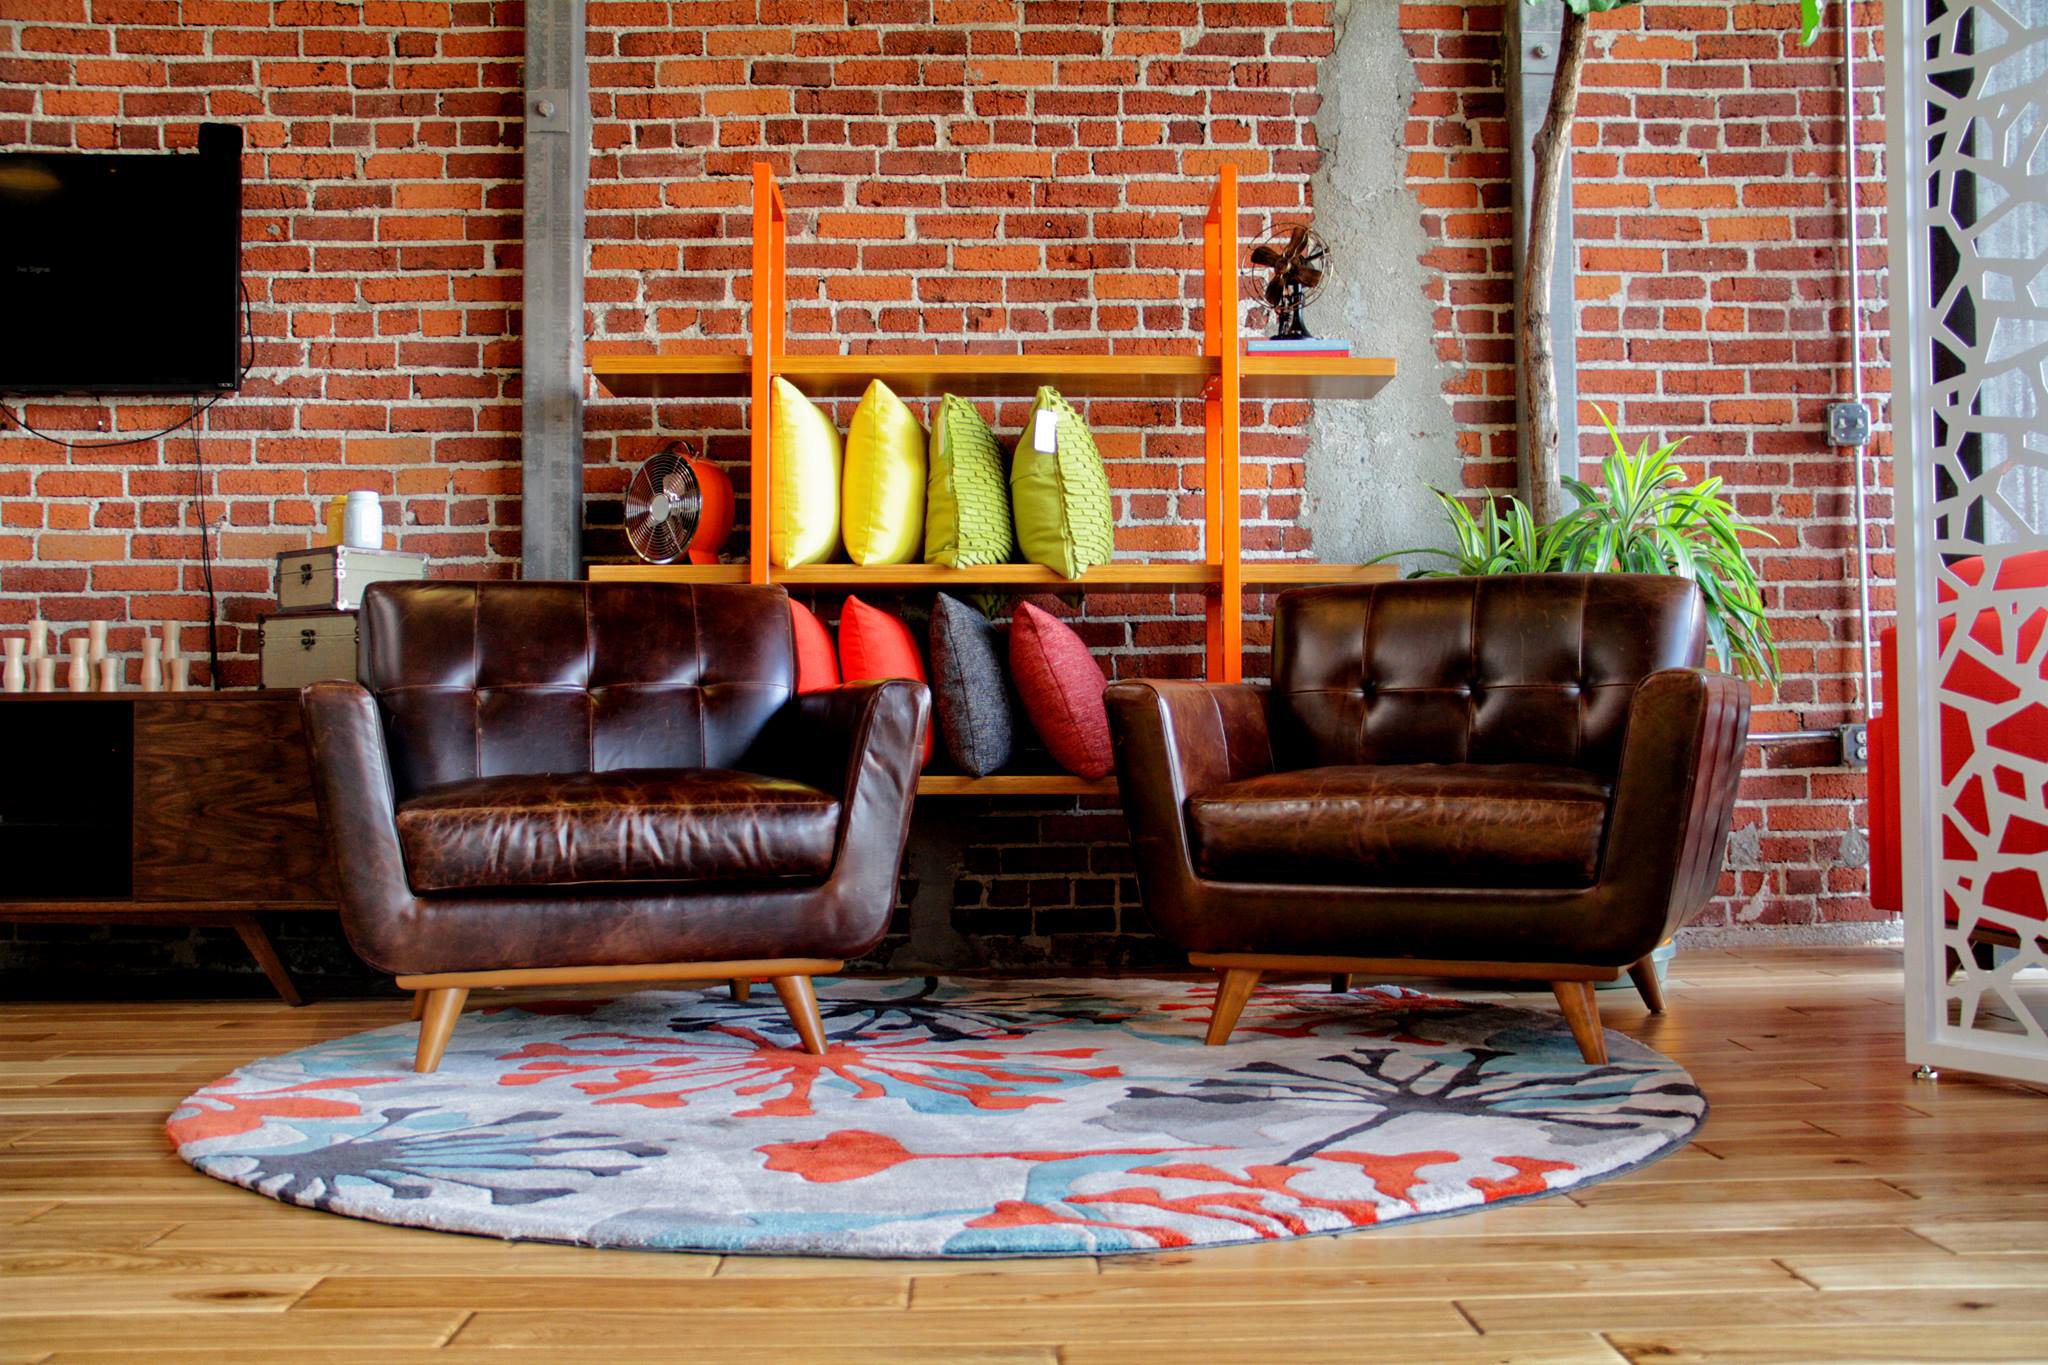 Thrive Furniture. Best furniture stores and home decor shops in Los Angeles